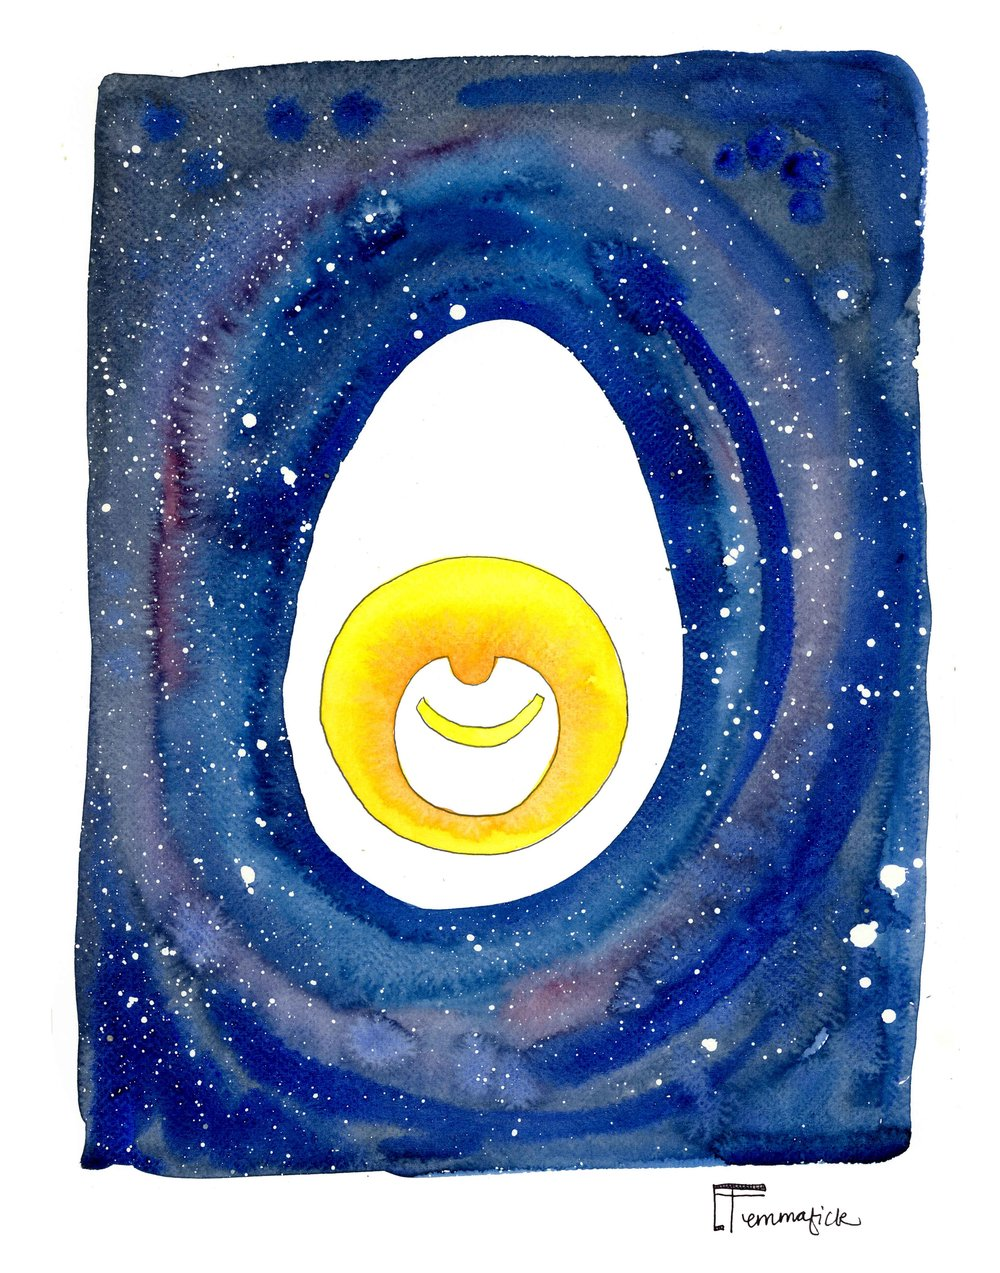 Night Egg 1 11x14.jpg